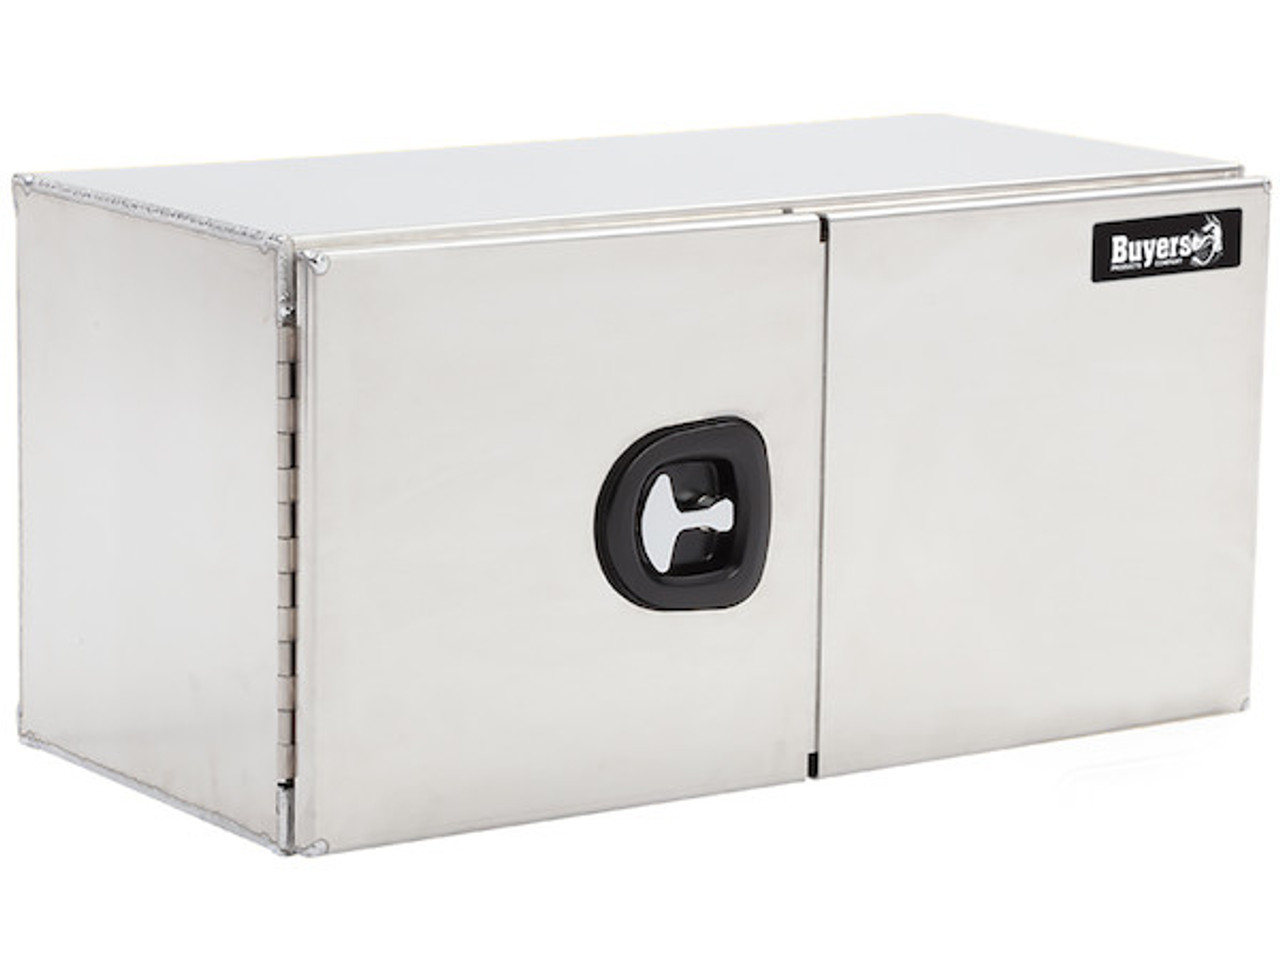 "1705350 BUYERS PRODUCTS SMOOTH ALUMINUM UNDERBODY TOOLBOX WITH BARN DOOR 24""HX24""DX72""W"